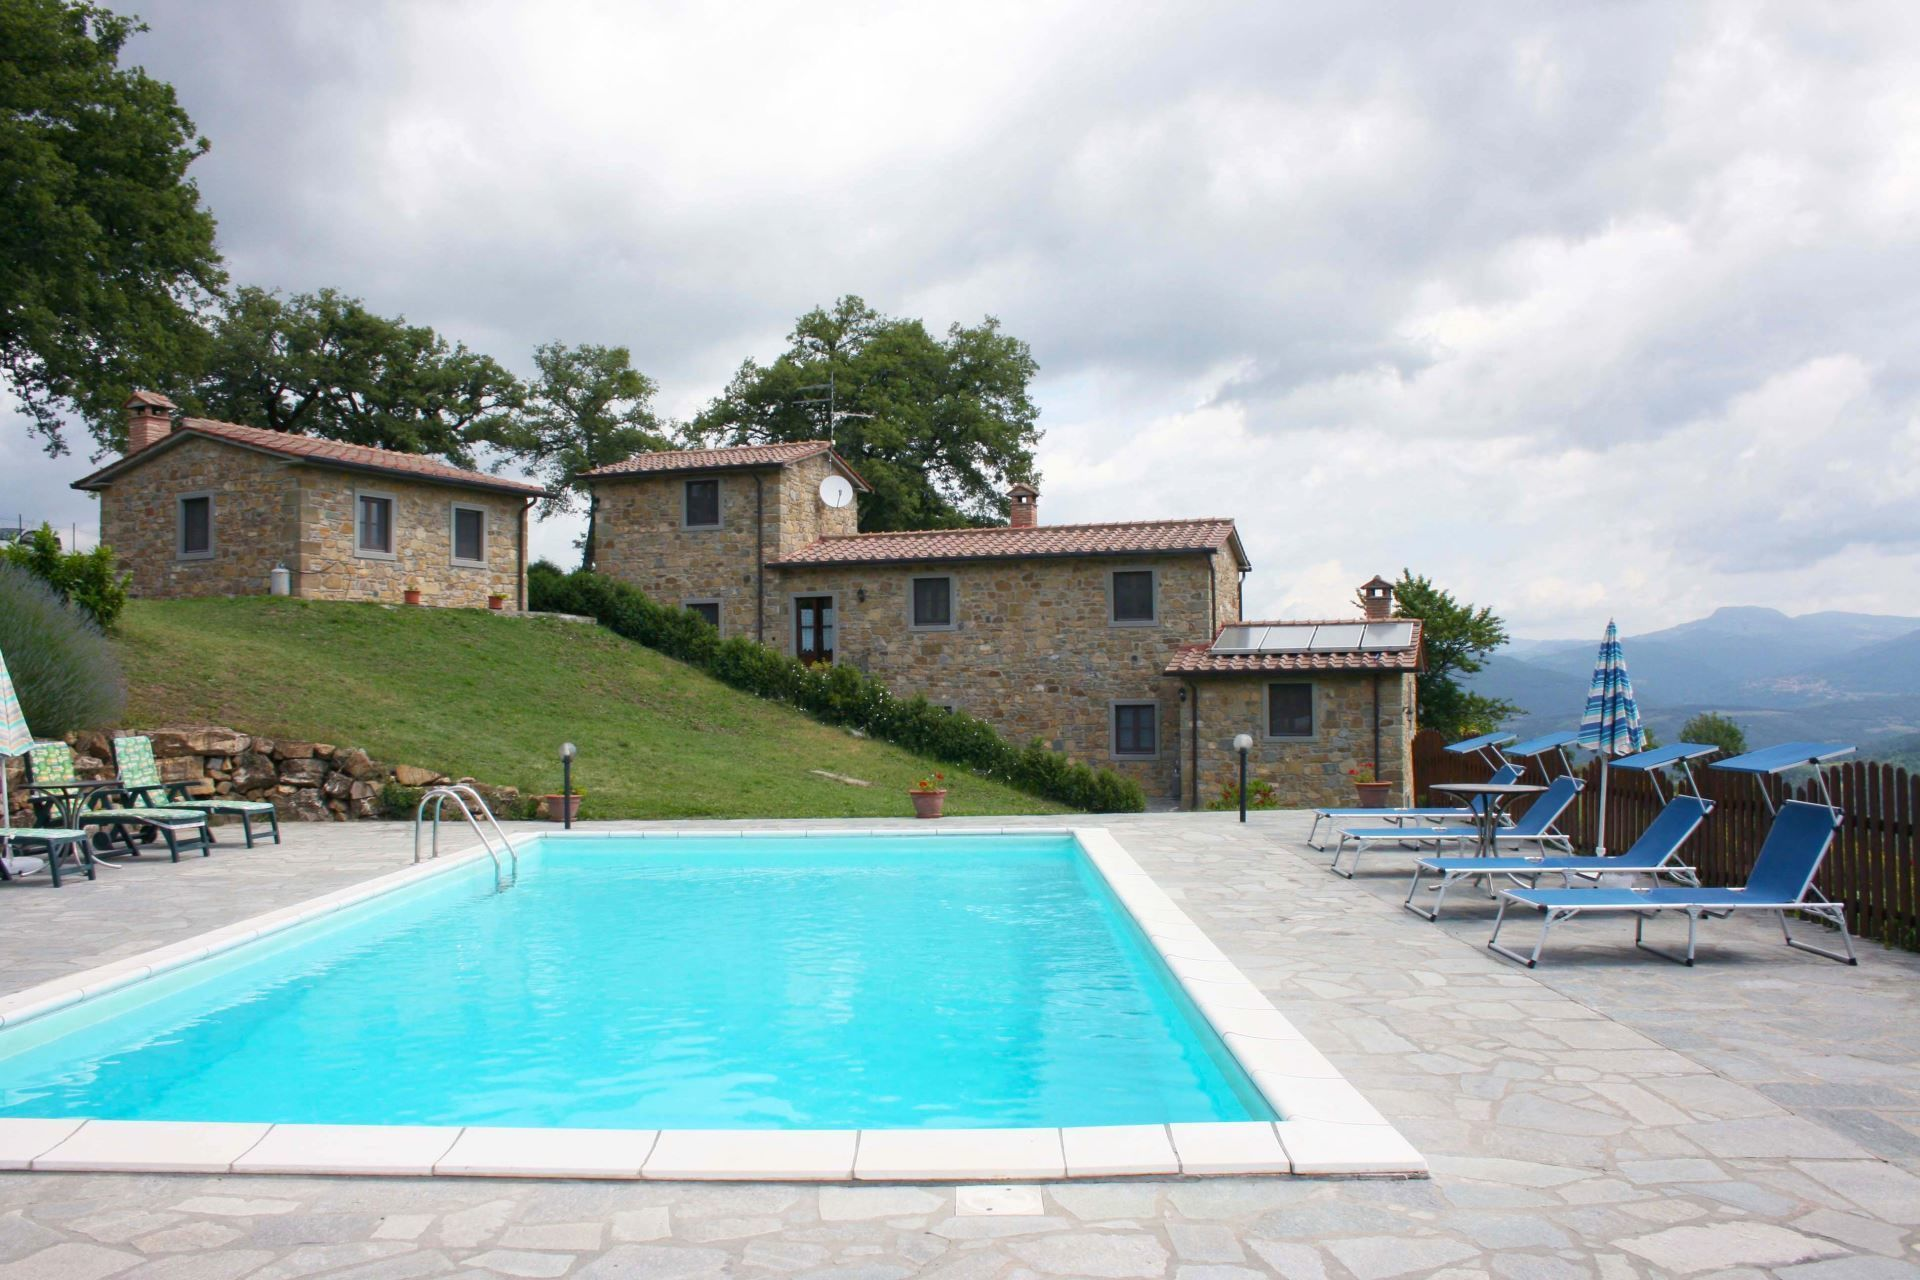 Agriturismo Il Basso Villa That Sleeps 8 People In 3